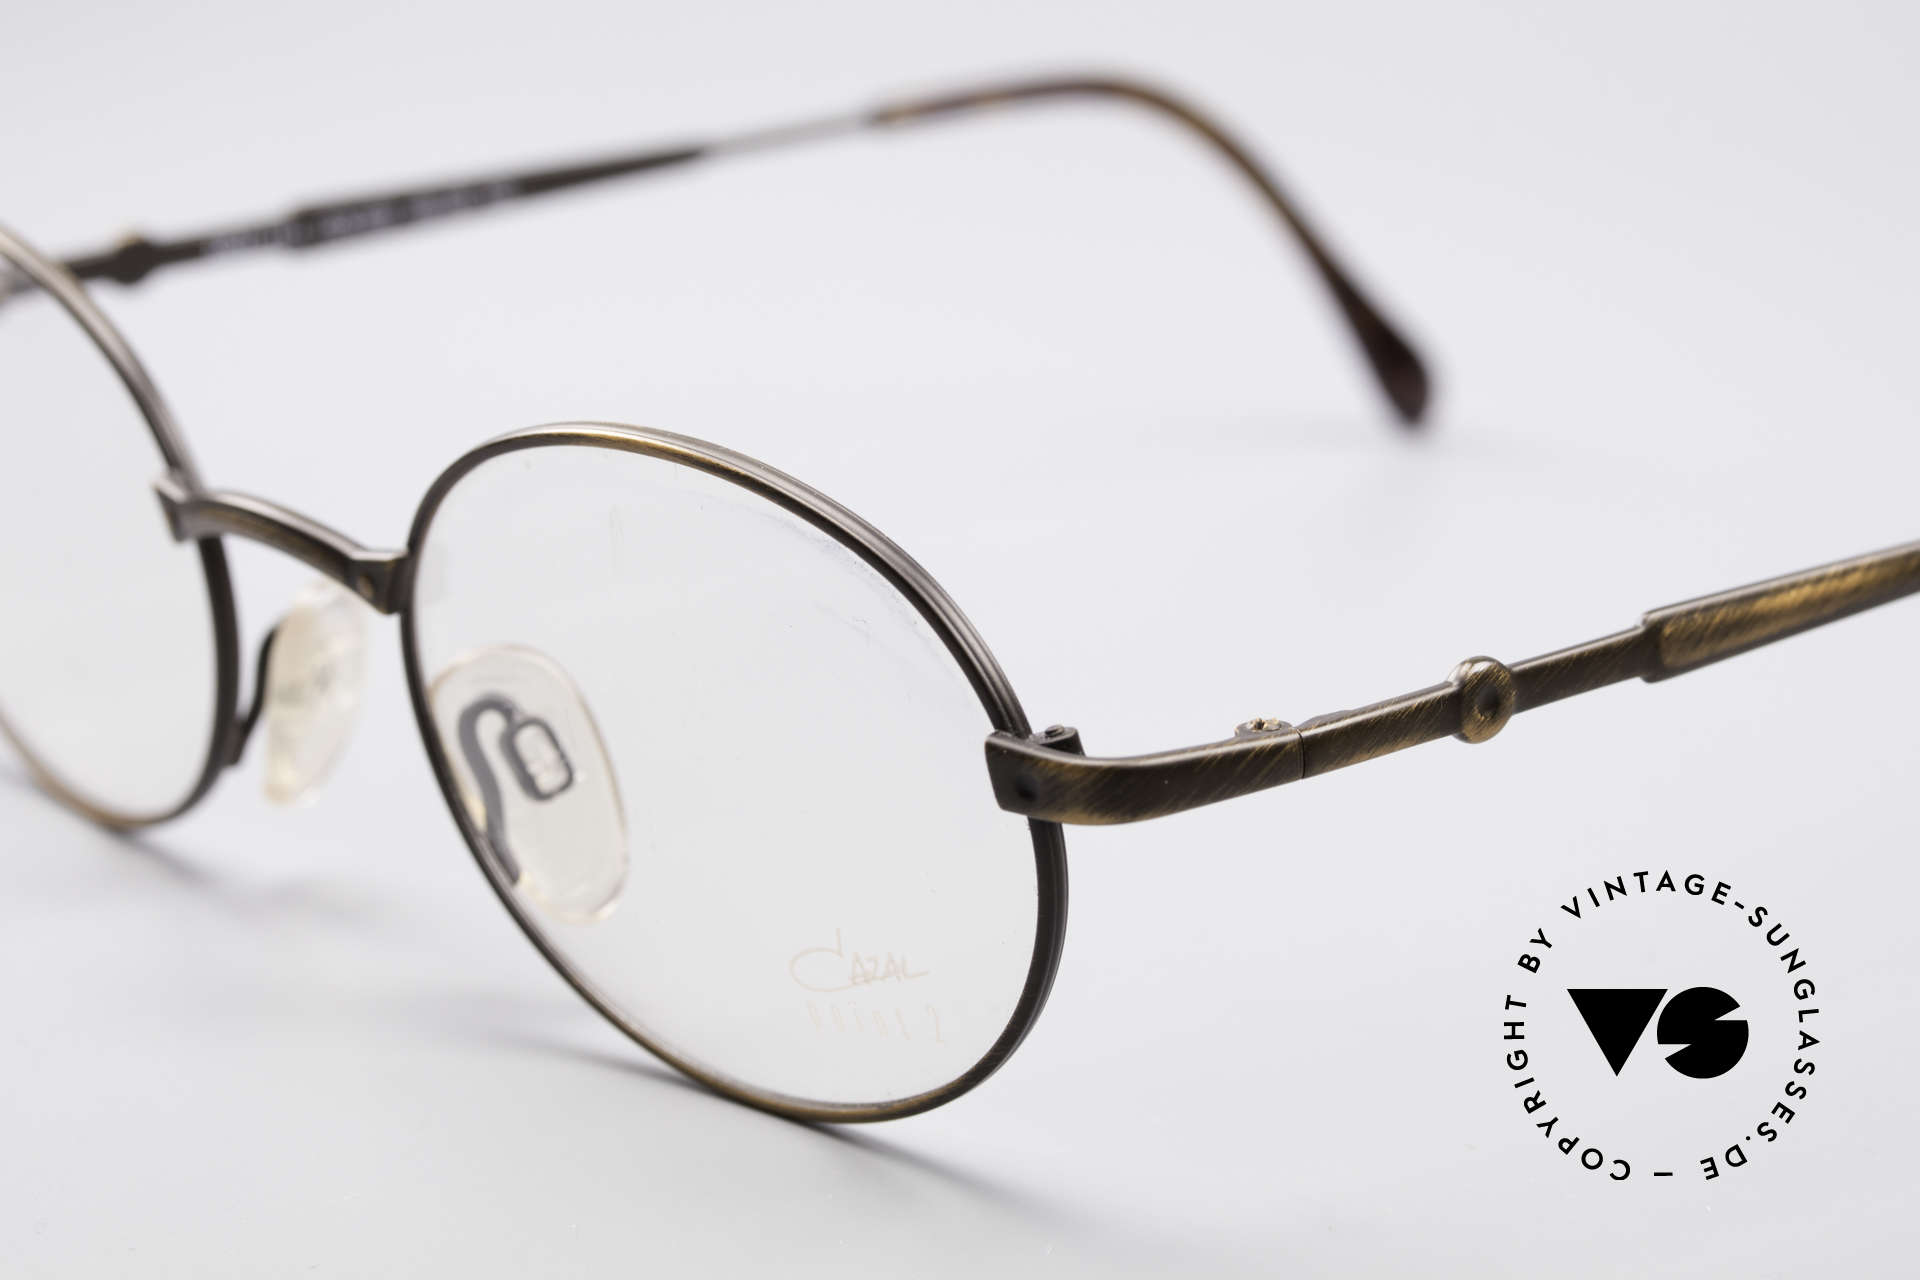 Cazal 1114 - Point 2 Oval Vintage Eyeglass Frame, plain design with clear and pures lines; just timeless!, Made for Men and Women